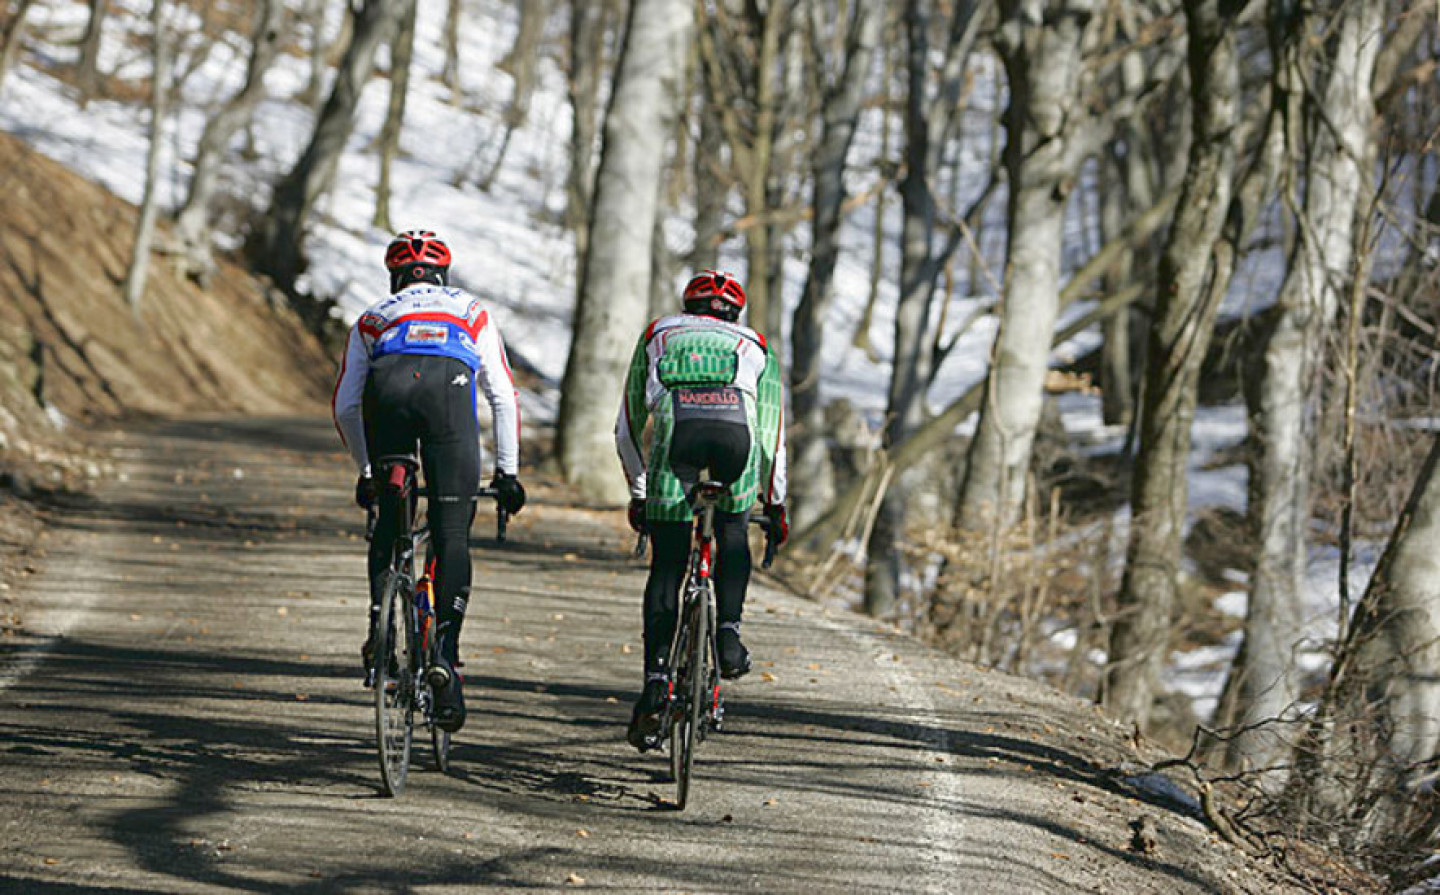 Cycling: itineraries for both beginners and experts